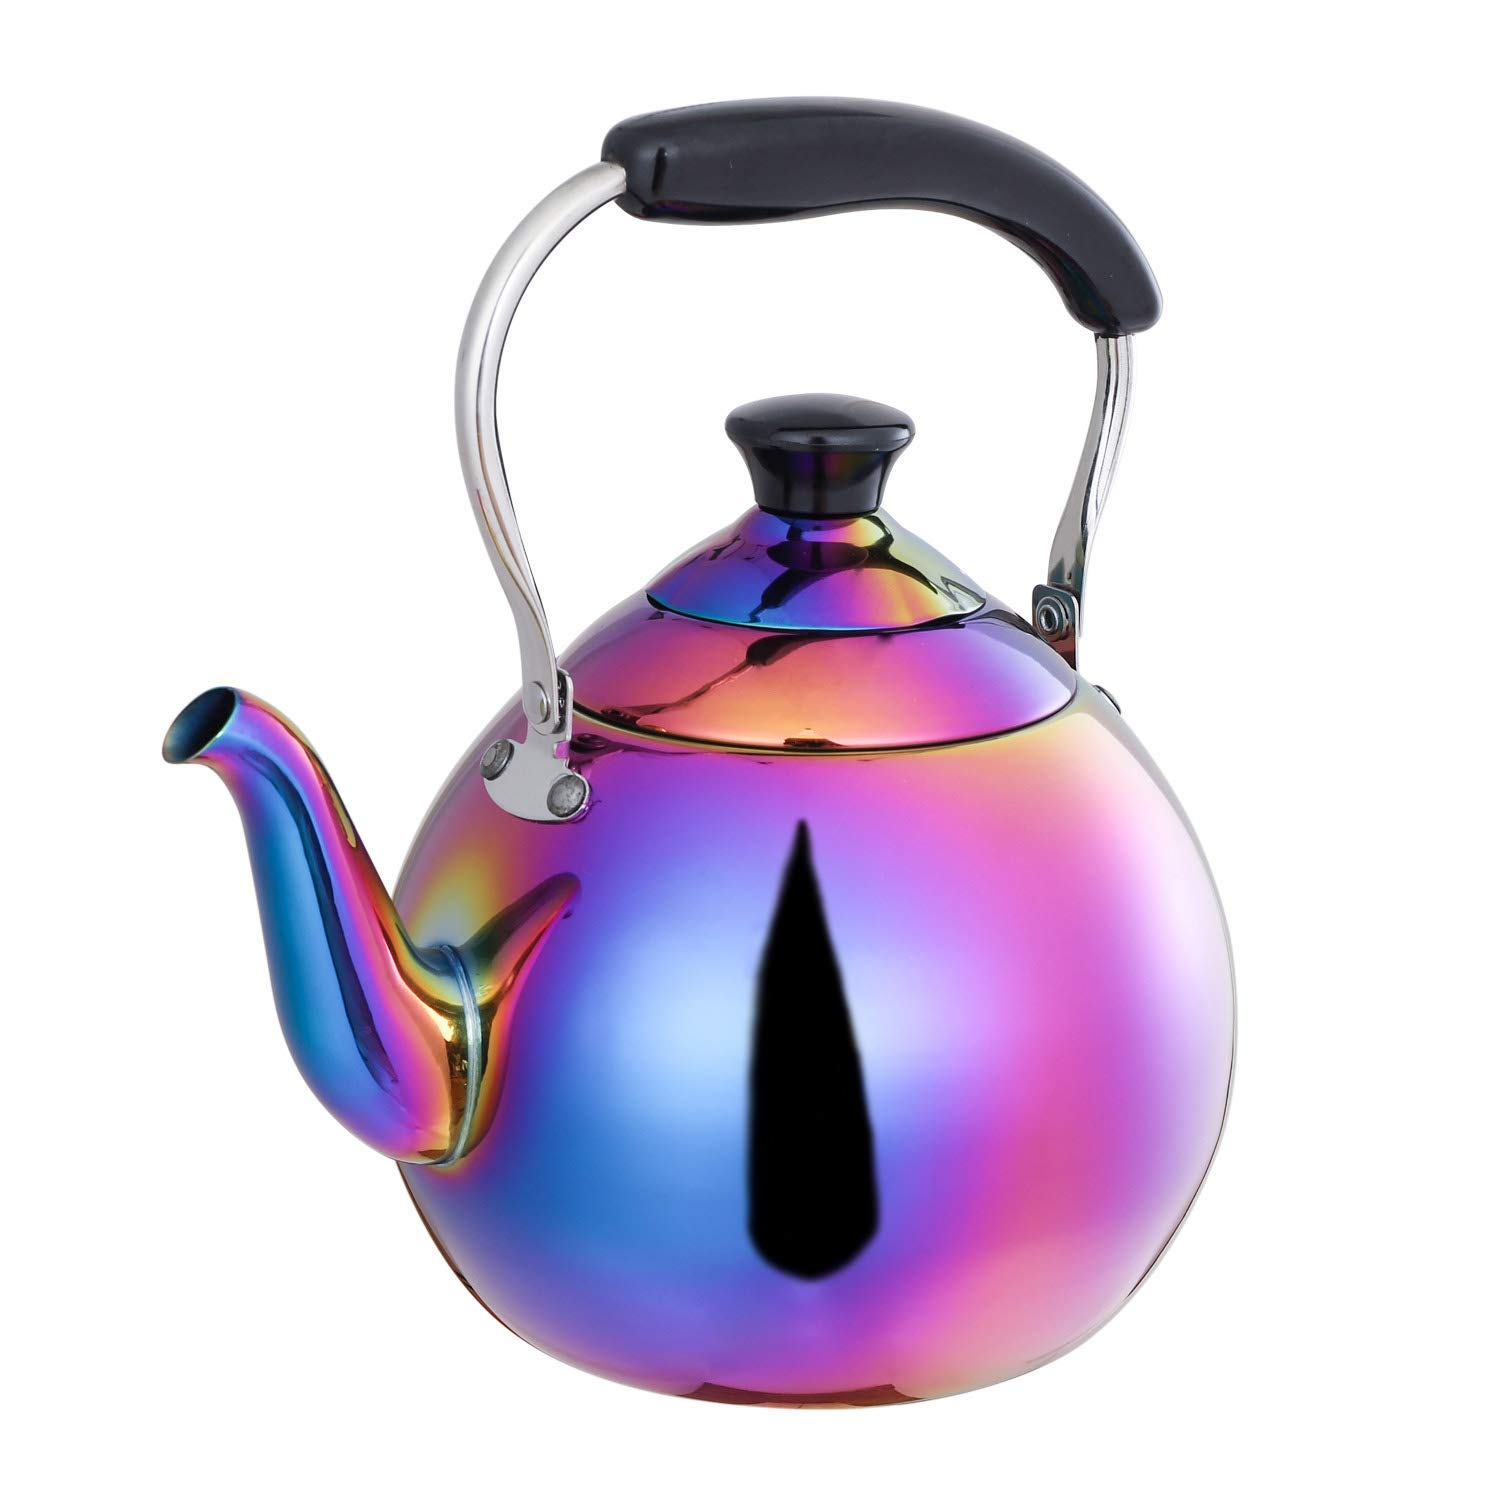 ROYDOM Whistling Tea Kettle Stainless Steel Teapot, 2-Liter Rainbow Teakettle for Stovetop Induction Stove Top, Fast Boiling Heat Water Tea Pot Maker Colorful 2.1-Quart